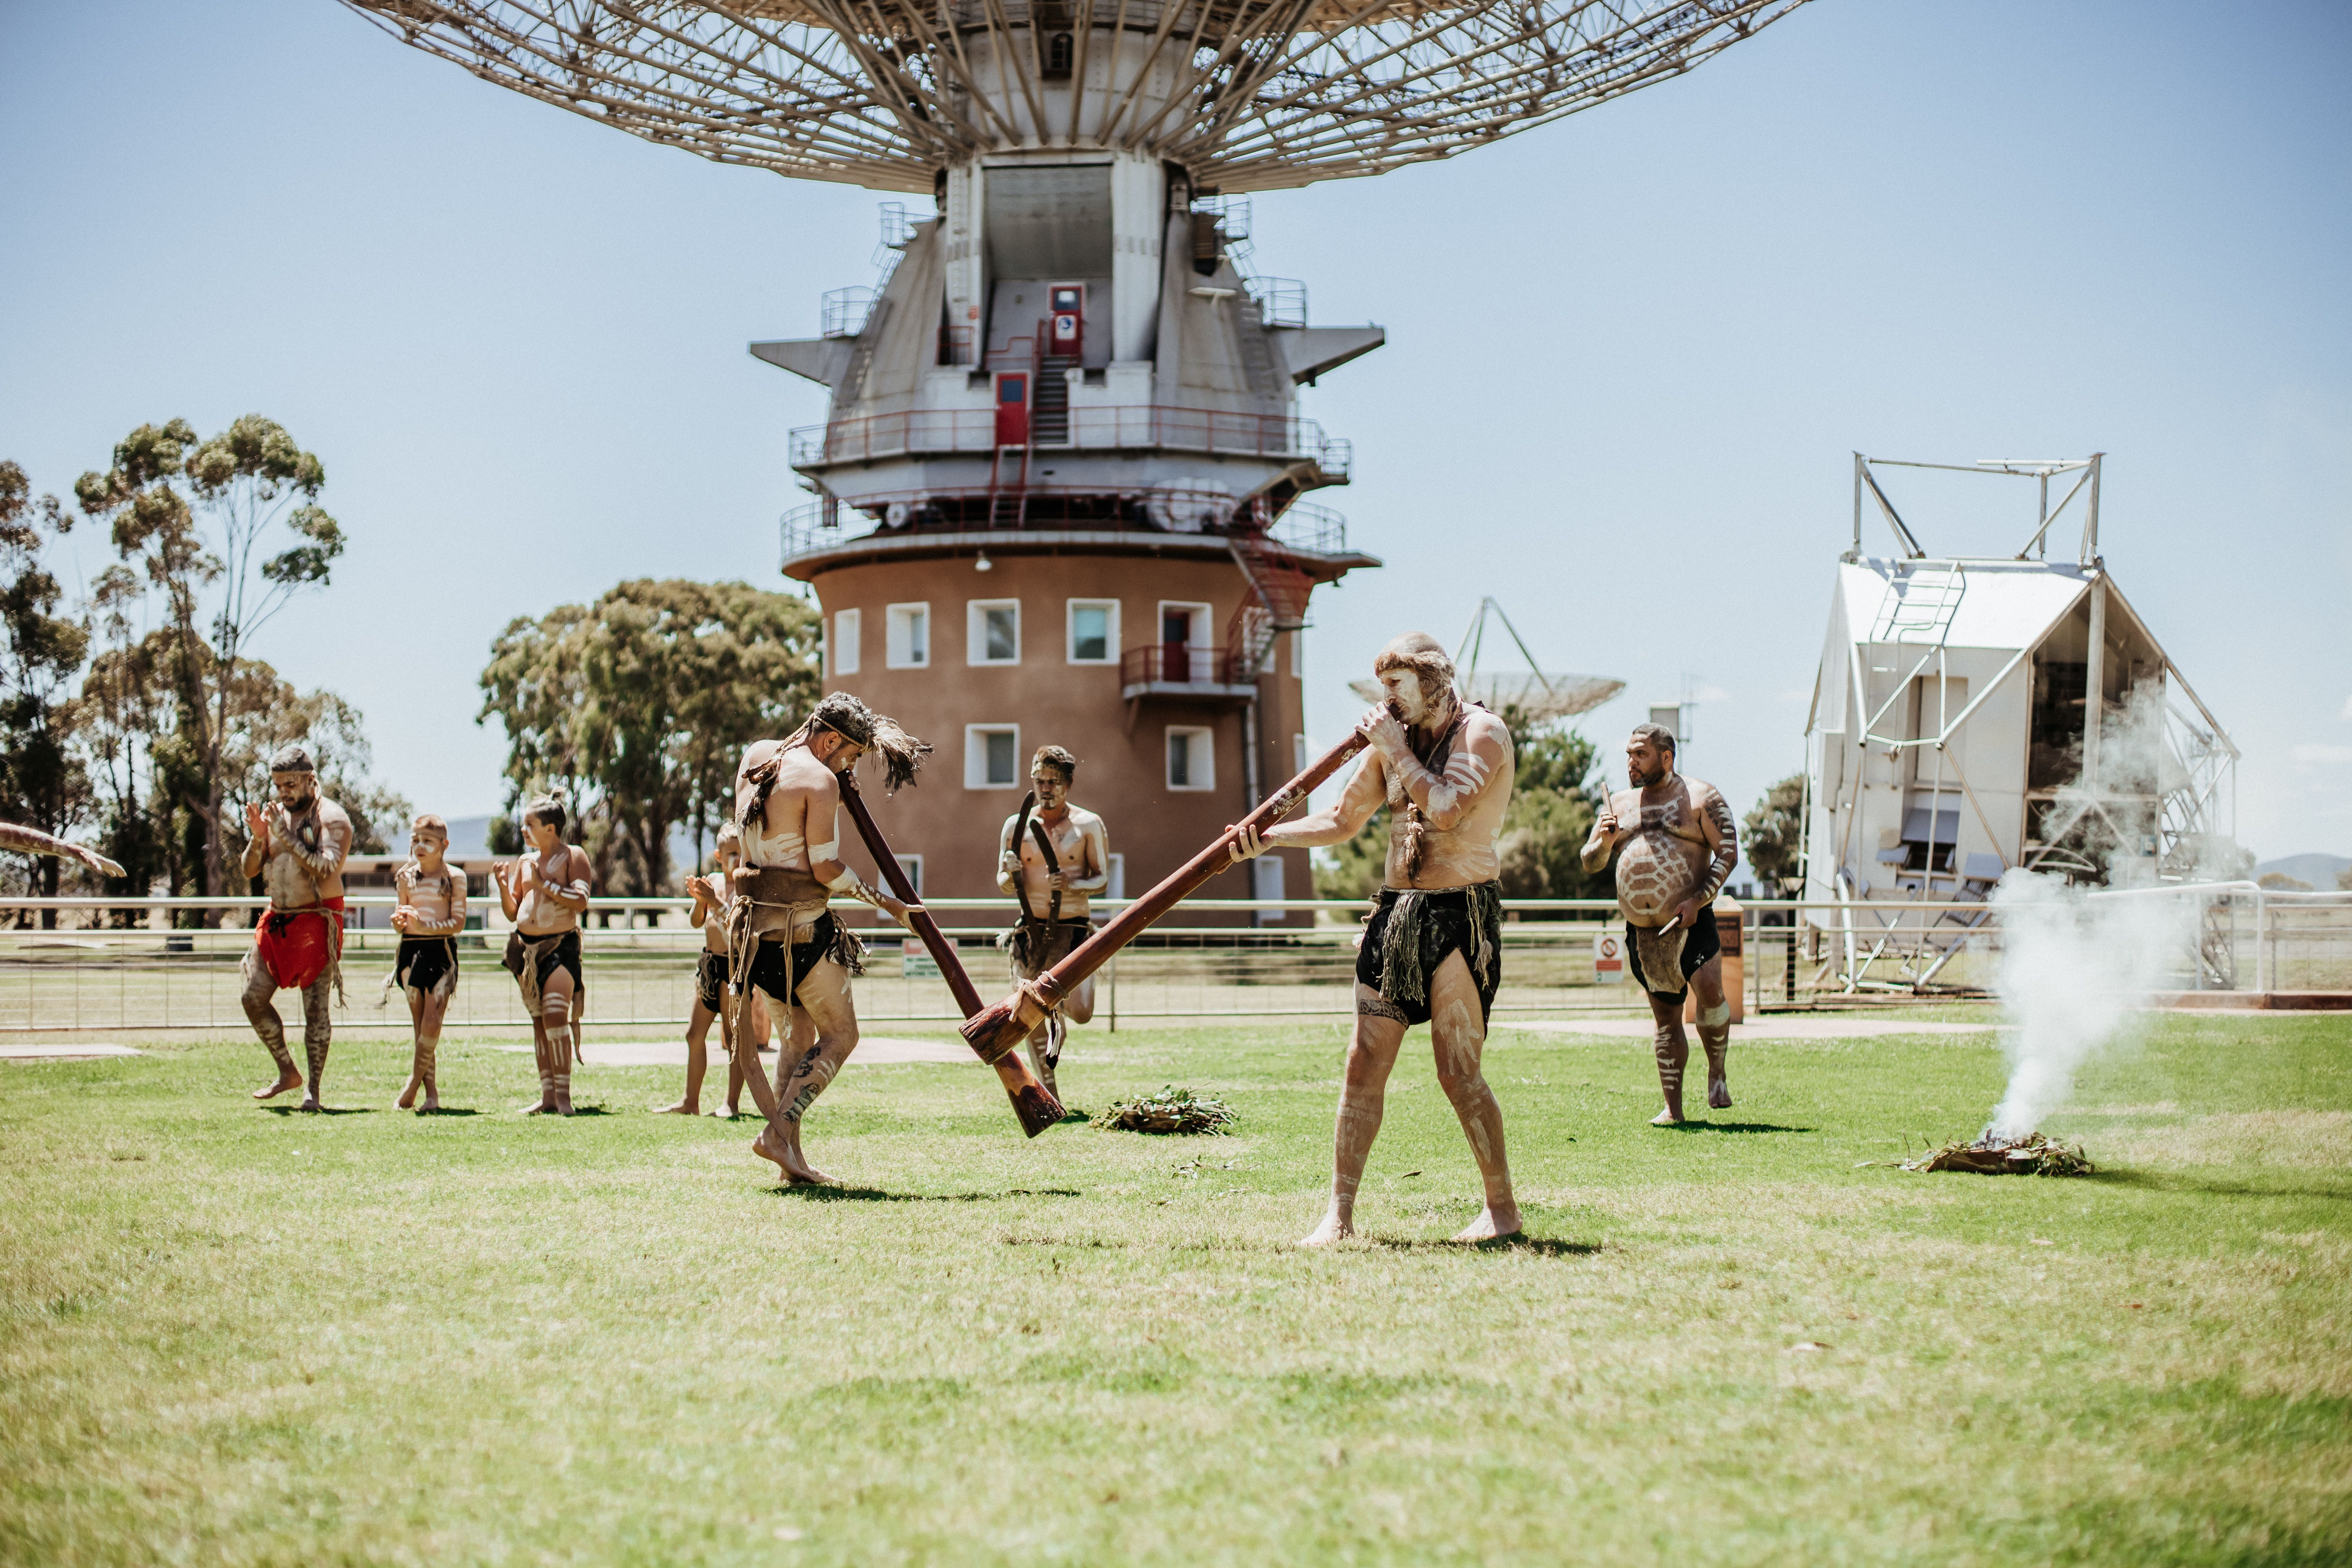 Smoking ceremony conducted by eight Wiradjuri males (3 of which are children) with two males in foreground blowing into digeridoo and a small pile of materials to the right is smoking. In the background is the telescope.